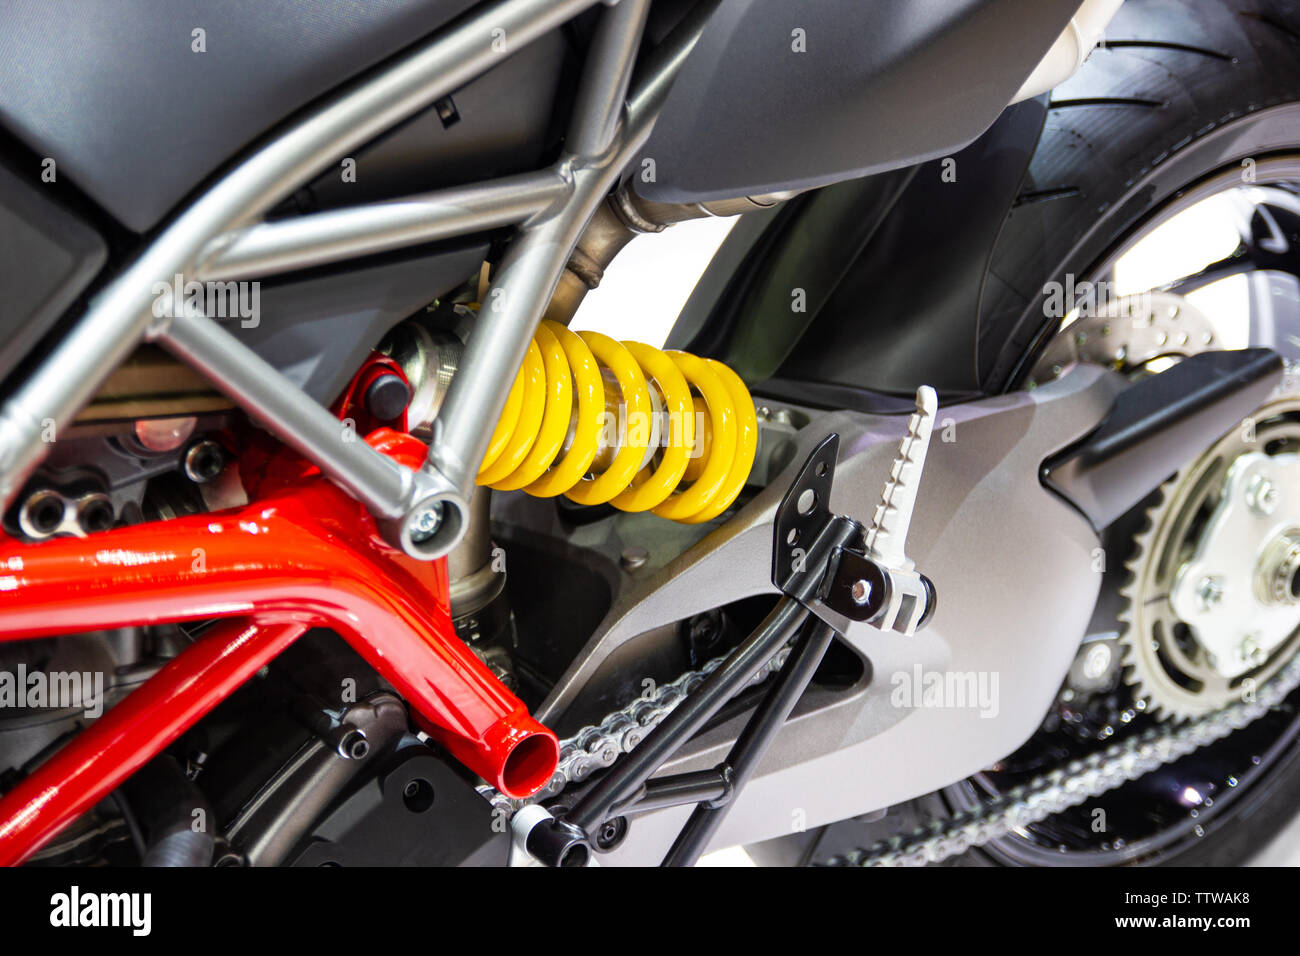 yellow Shock Absorbers of Motorcycle for absorbing jolts net technology concept new technology design - Stock Image